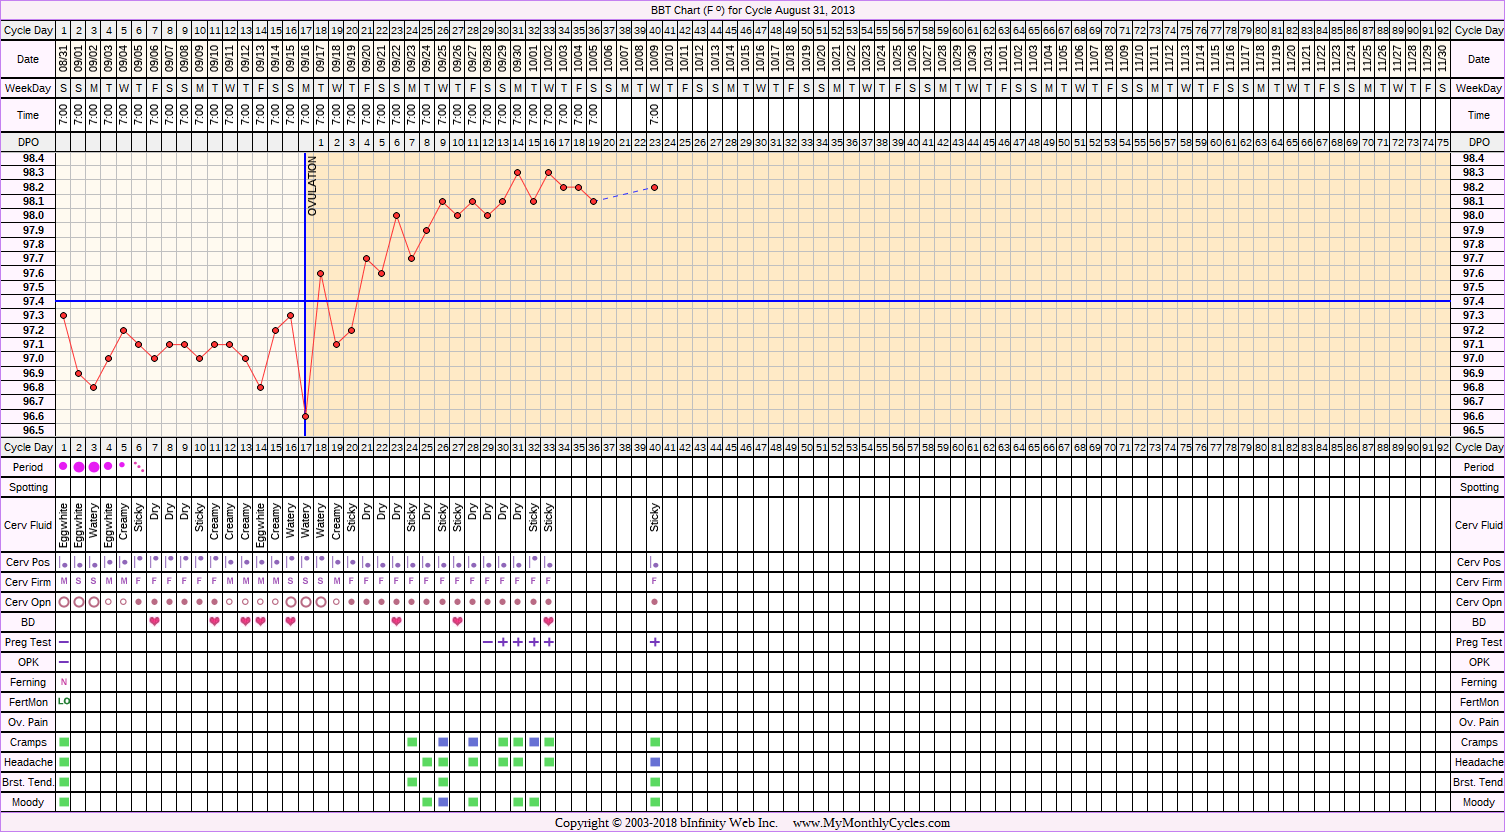 Fertility Chart for cycle Aug 31, 2013, chart owner tags: BFP (Pregnant), BreastFeeding, Metformin, PCOS